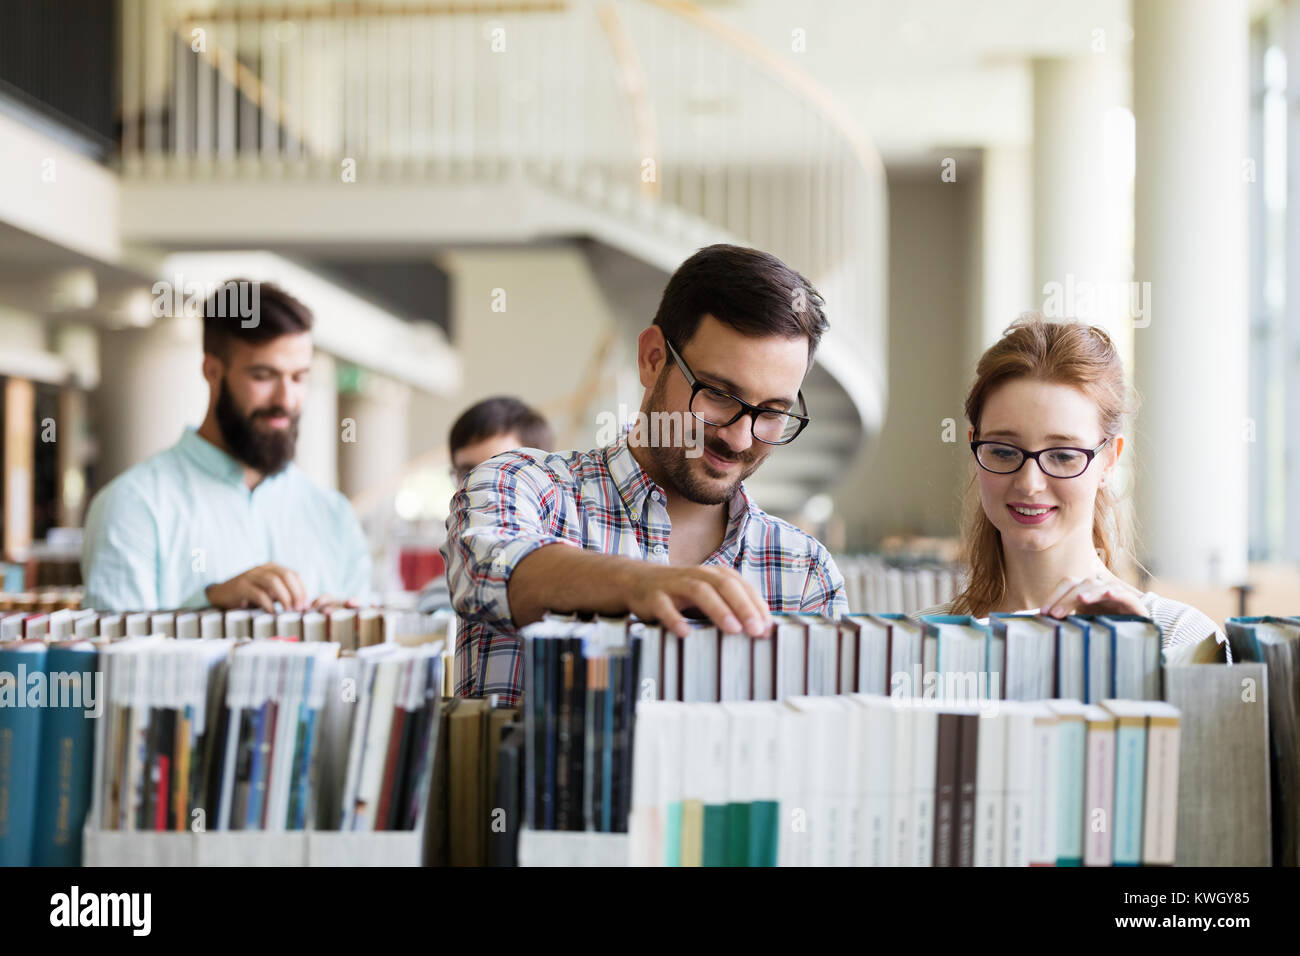 Happy young university students studying with books in library - Stock Image